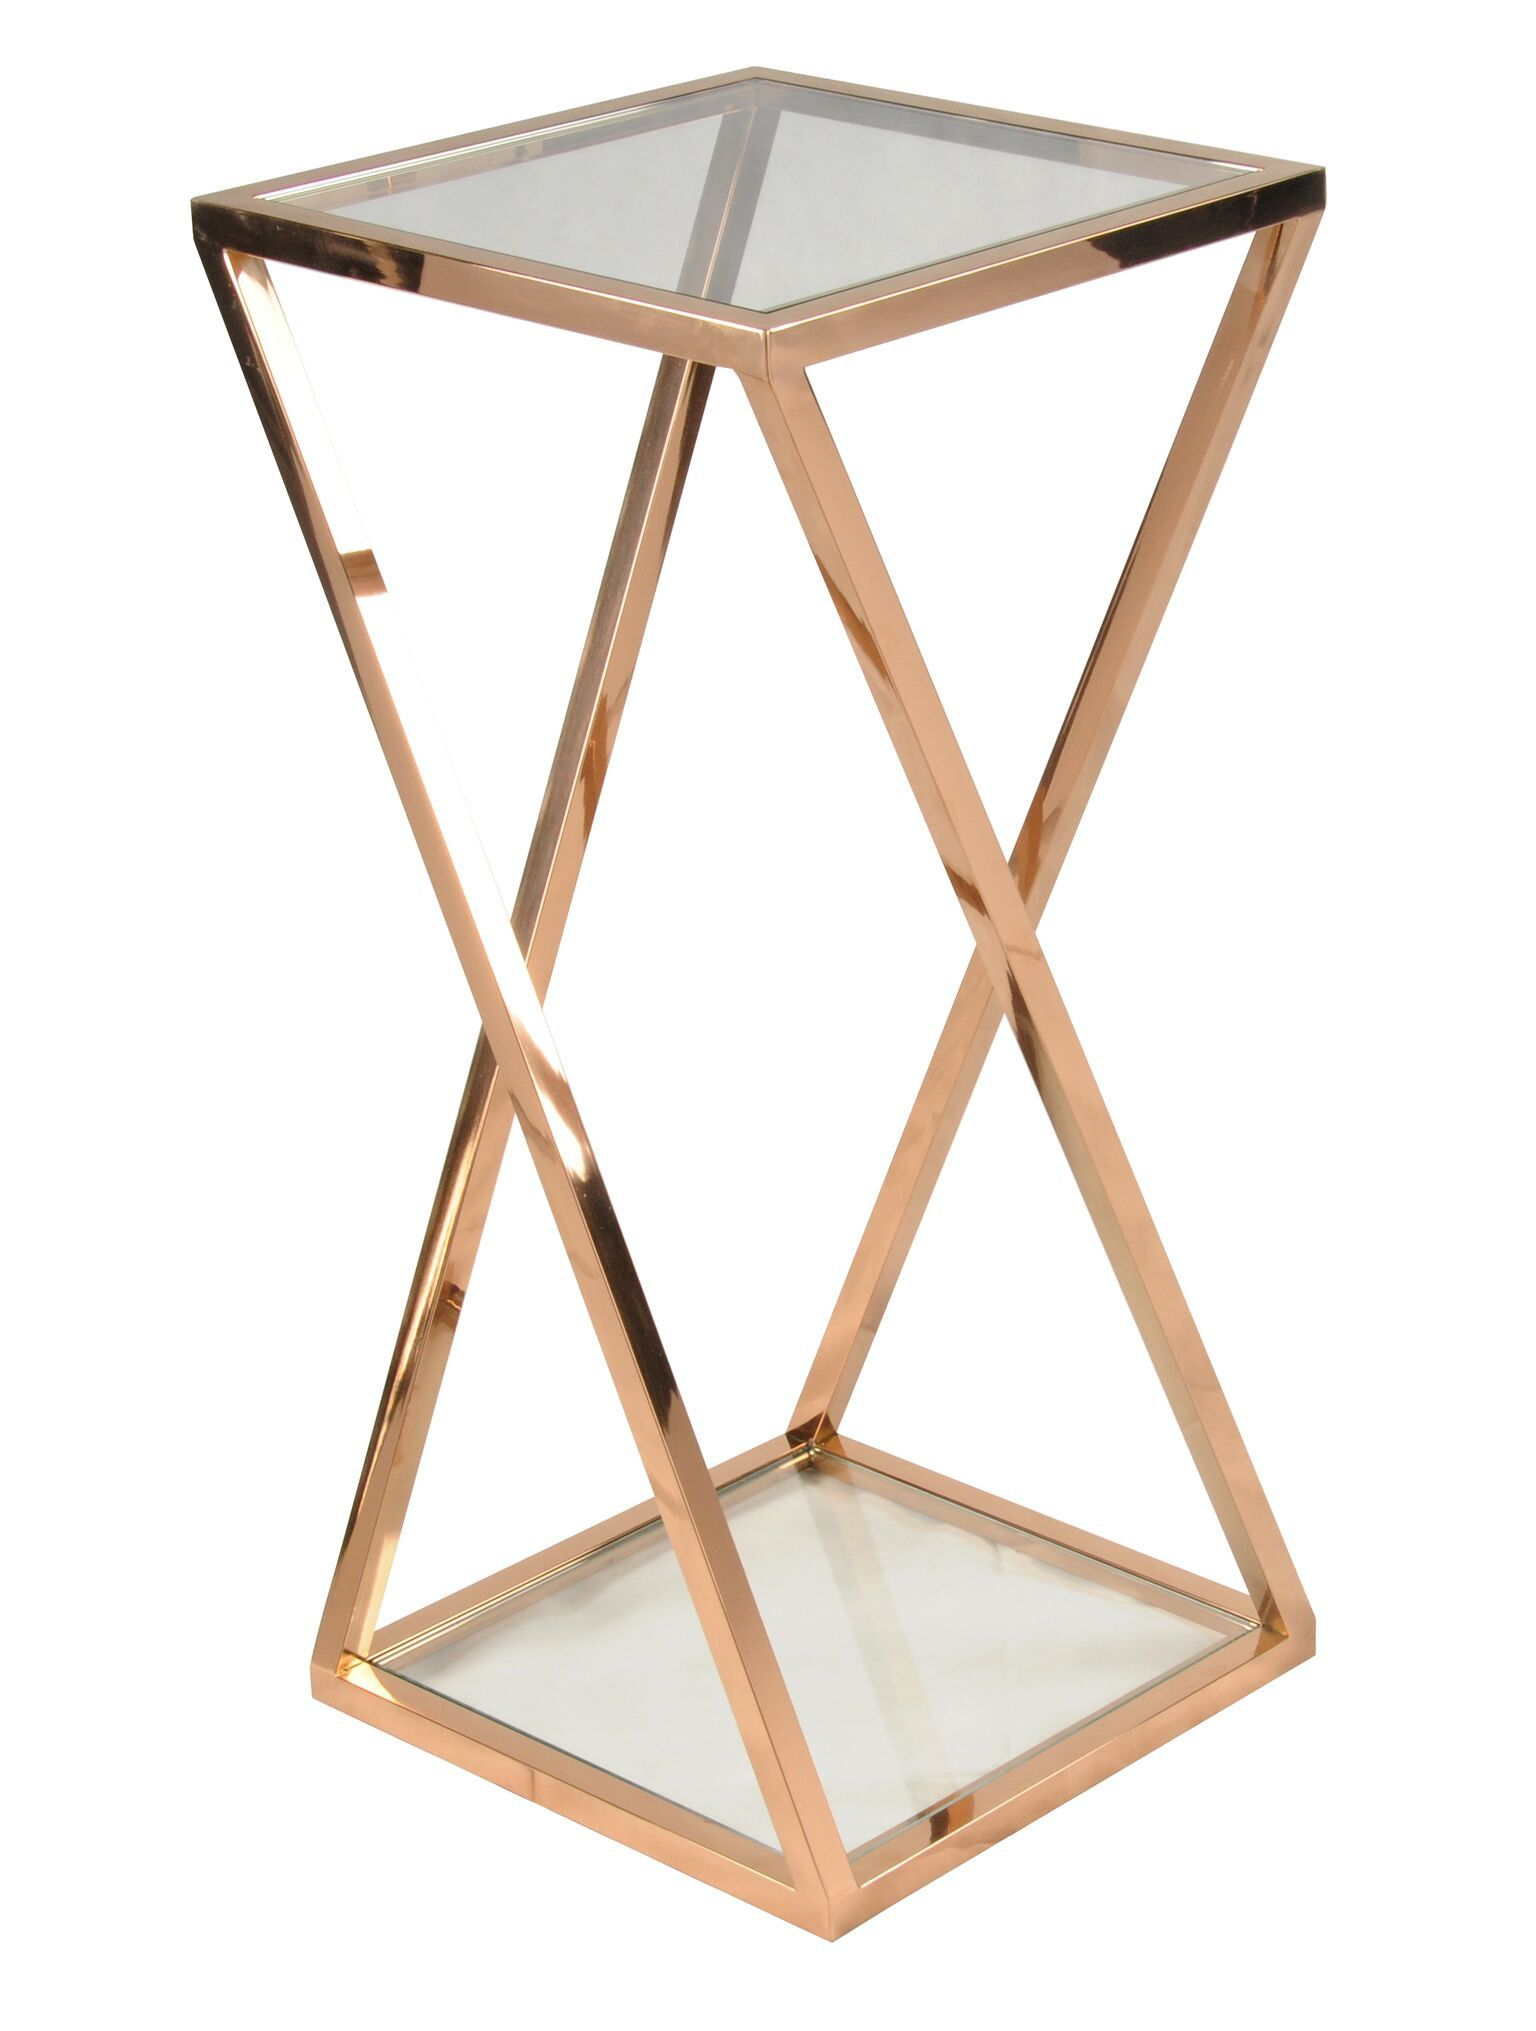 villa park side table rose gold tall home ideas end accent perspex nest tables skinny barnwood coffee west elm stools ikea console hooker dining metal round corner set fall runner